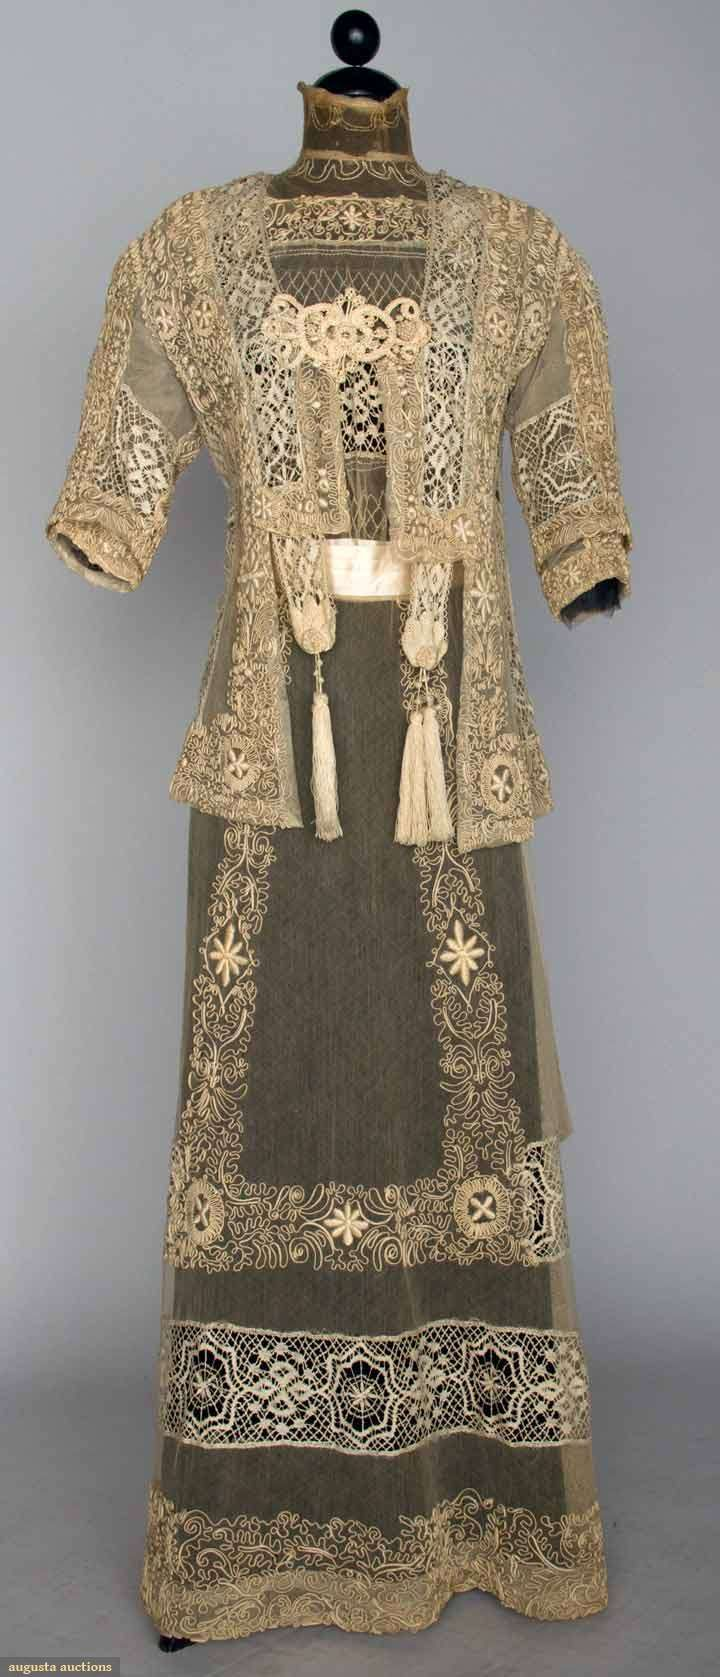 Circa 1914 lace tea gown and jacket: cream cotton net w/soutache, bobbin lace, and embroidery; hip length jacket w/cut away front